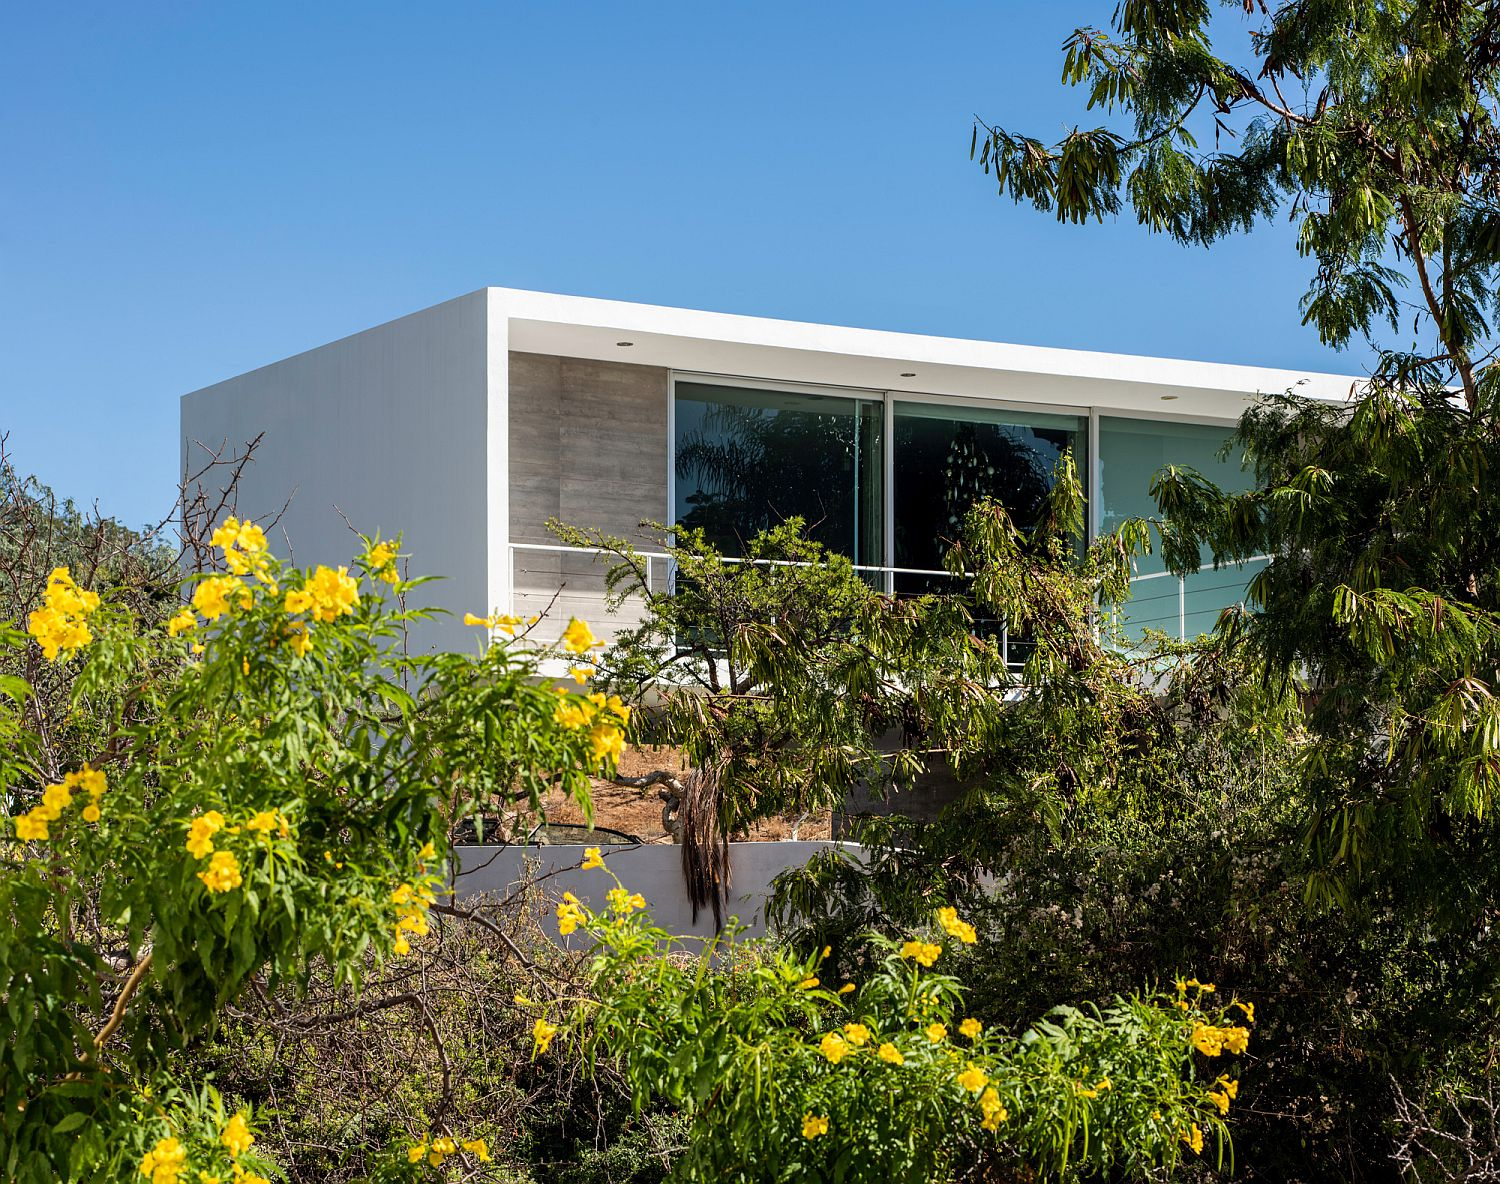 Natural canopy offers a screen of privacy for the house